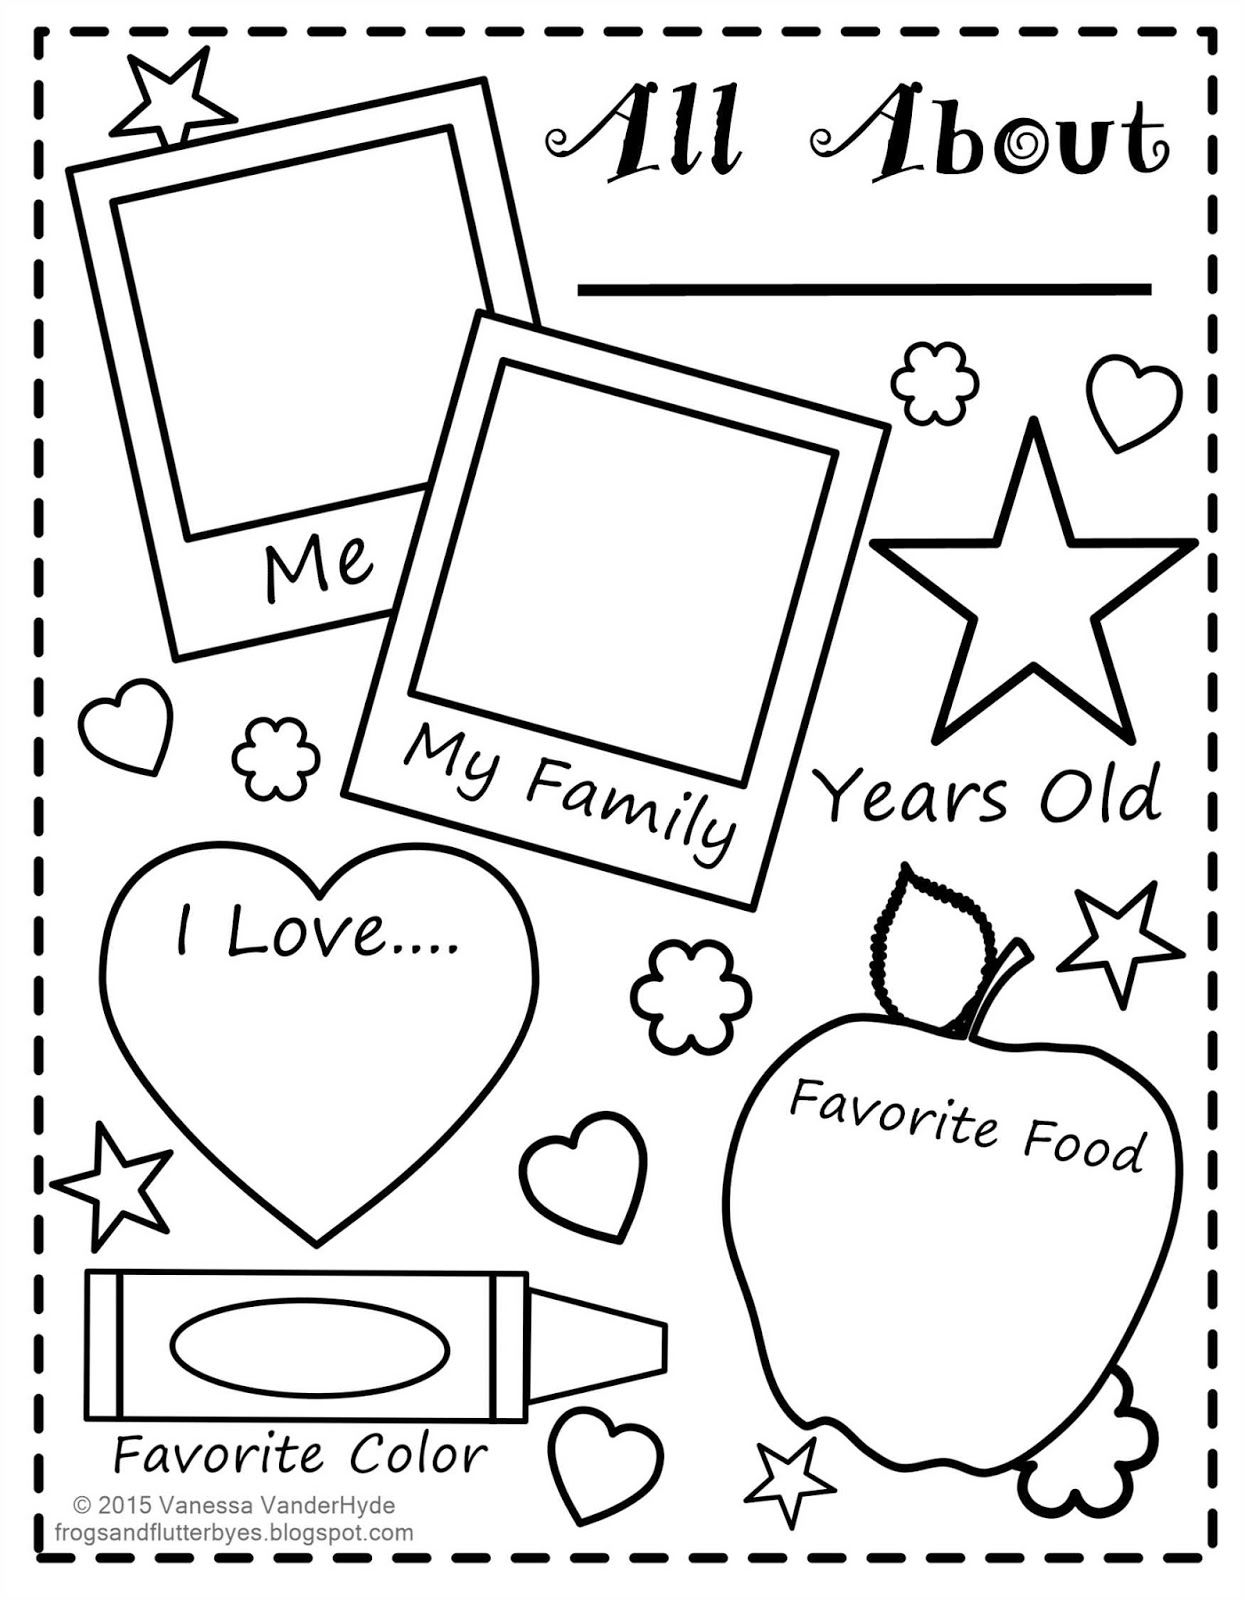 Impertinent image within all about me printable preschool